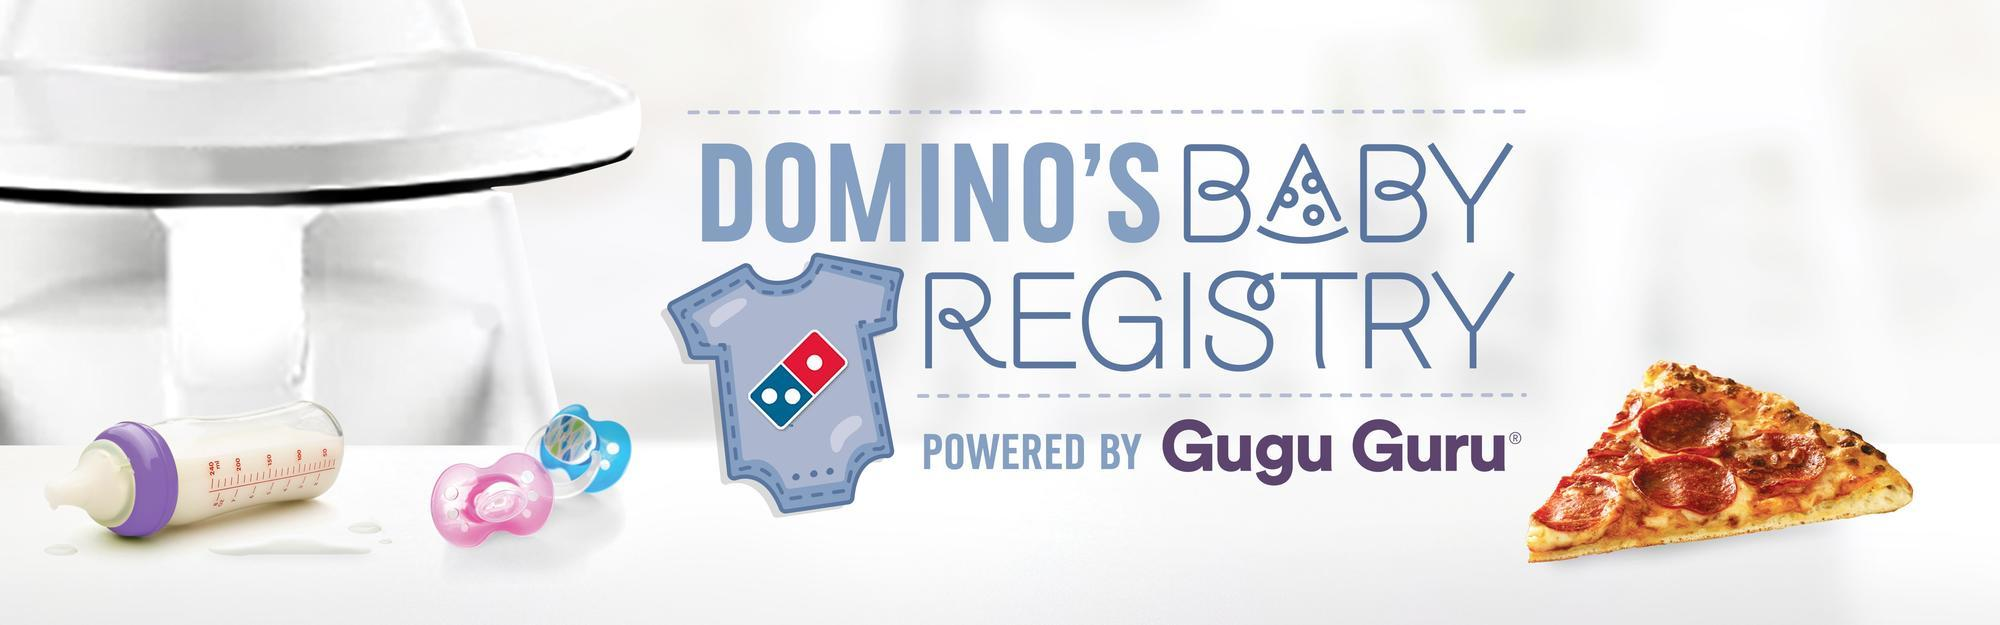 Domino's Pizza Registry